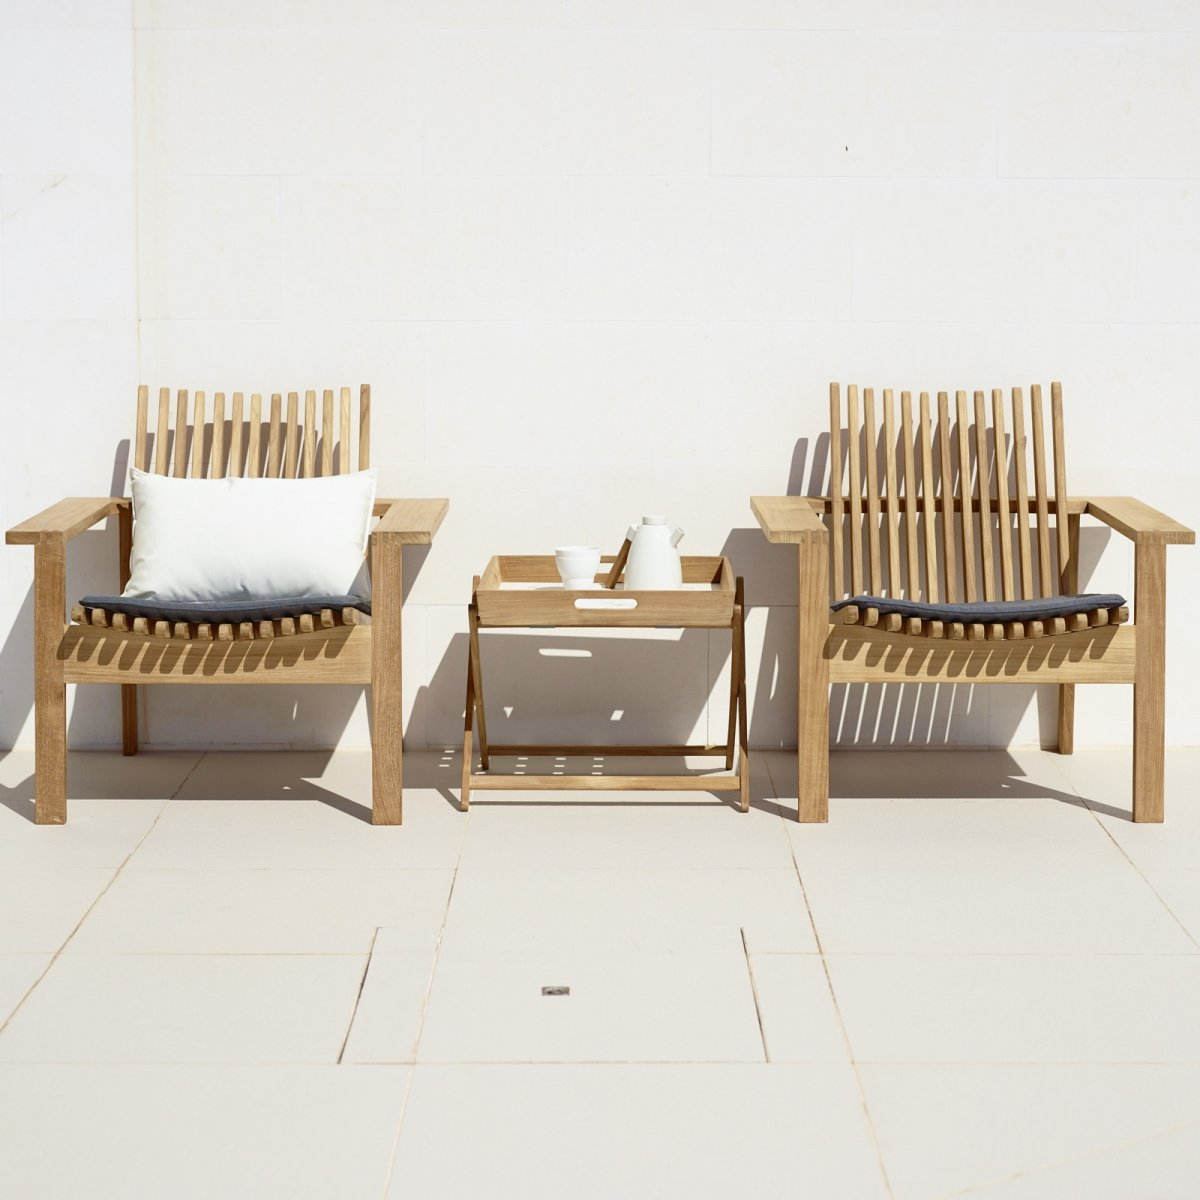 Amaze Lounge Chairs with Folding Side Table.